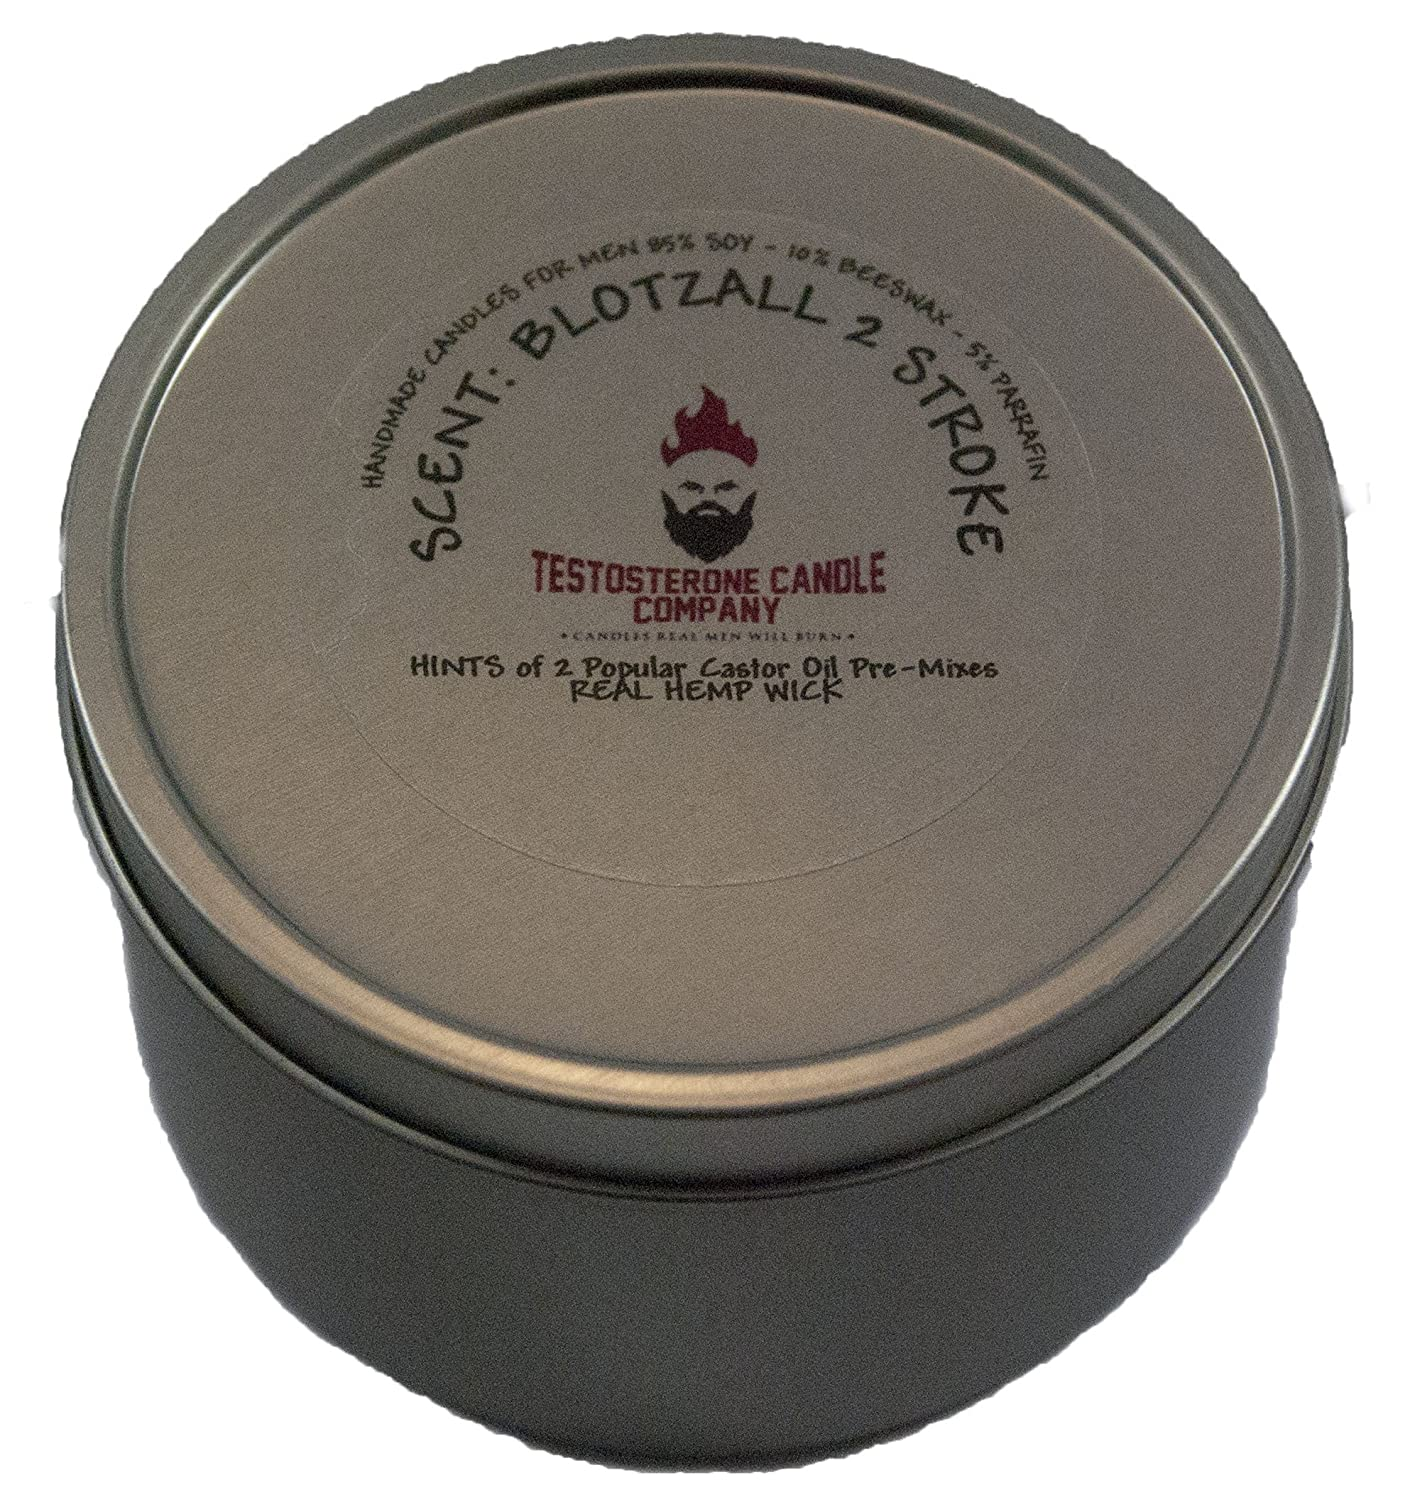 Testosterone Candle Company Blotzall Motocross Blended Castor Oil Scented Candle 8oz